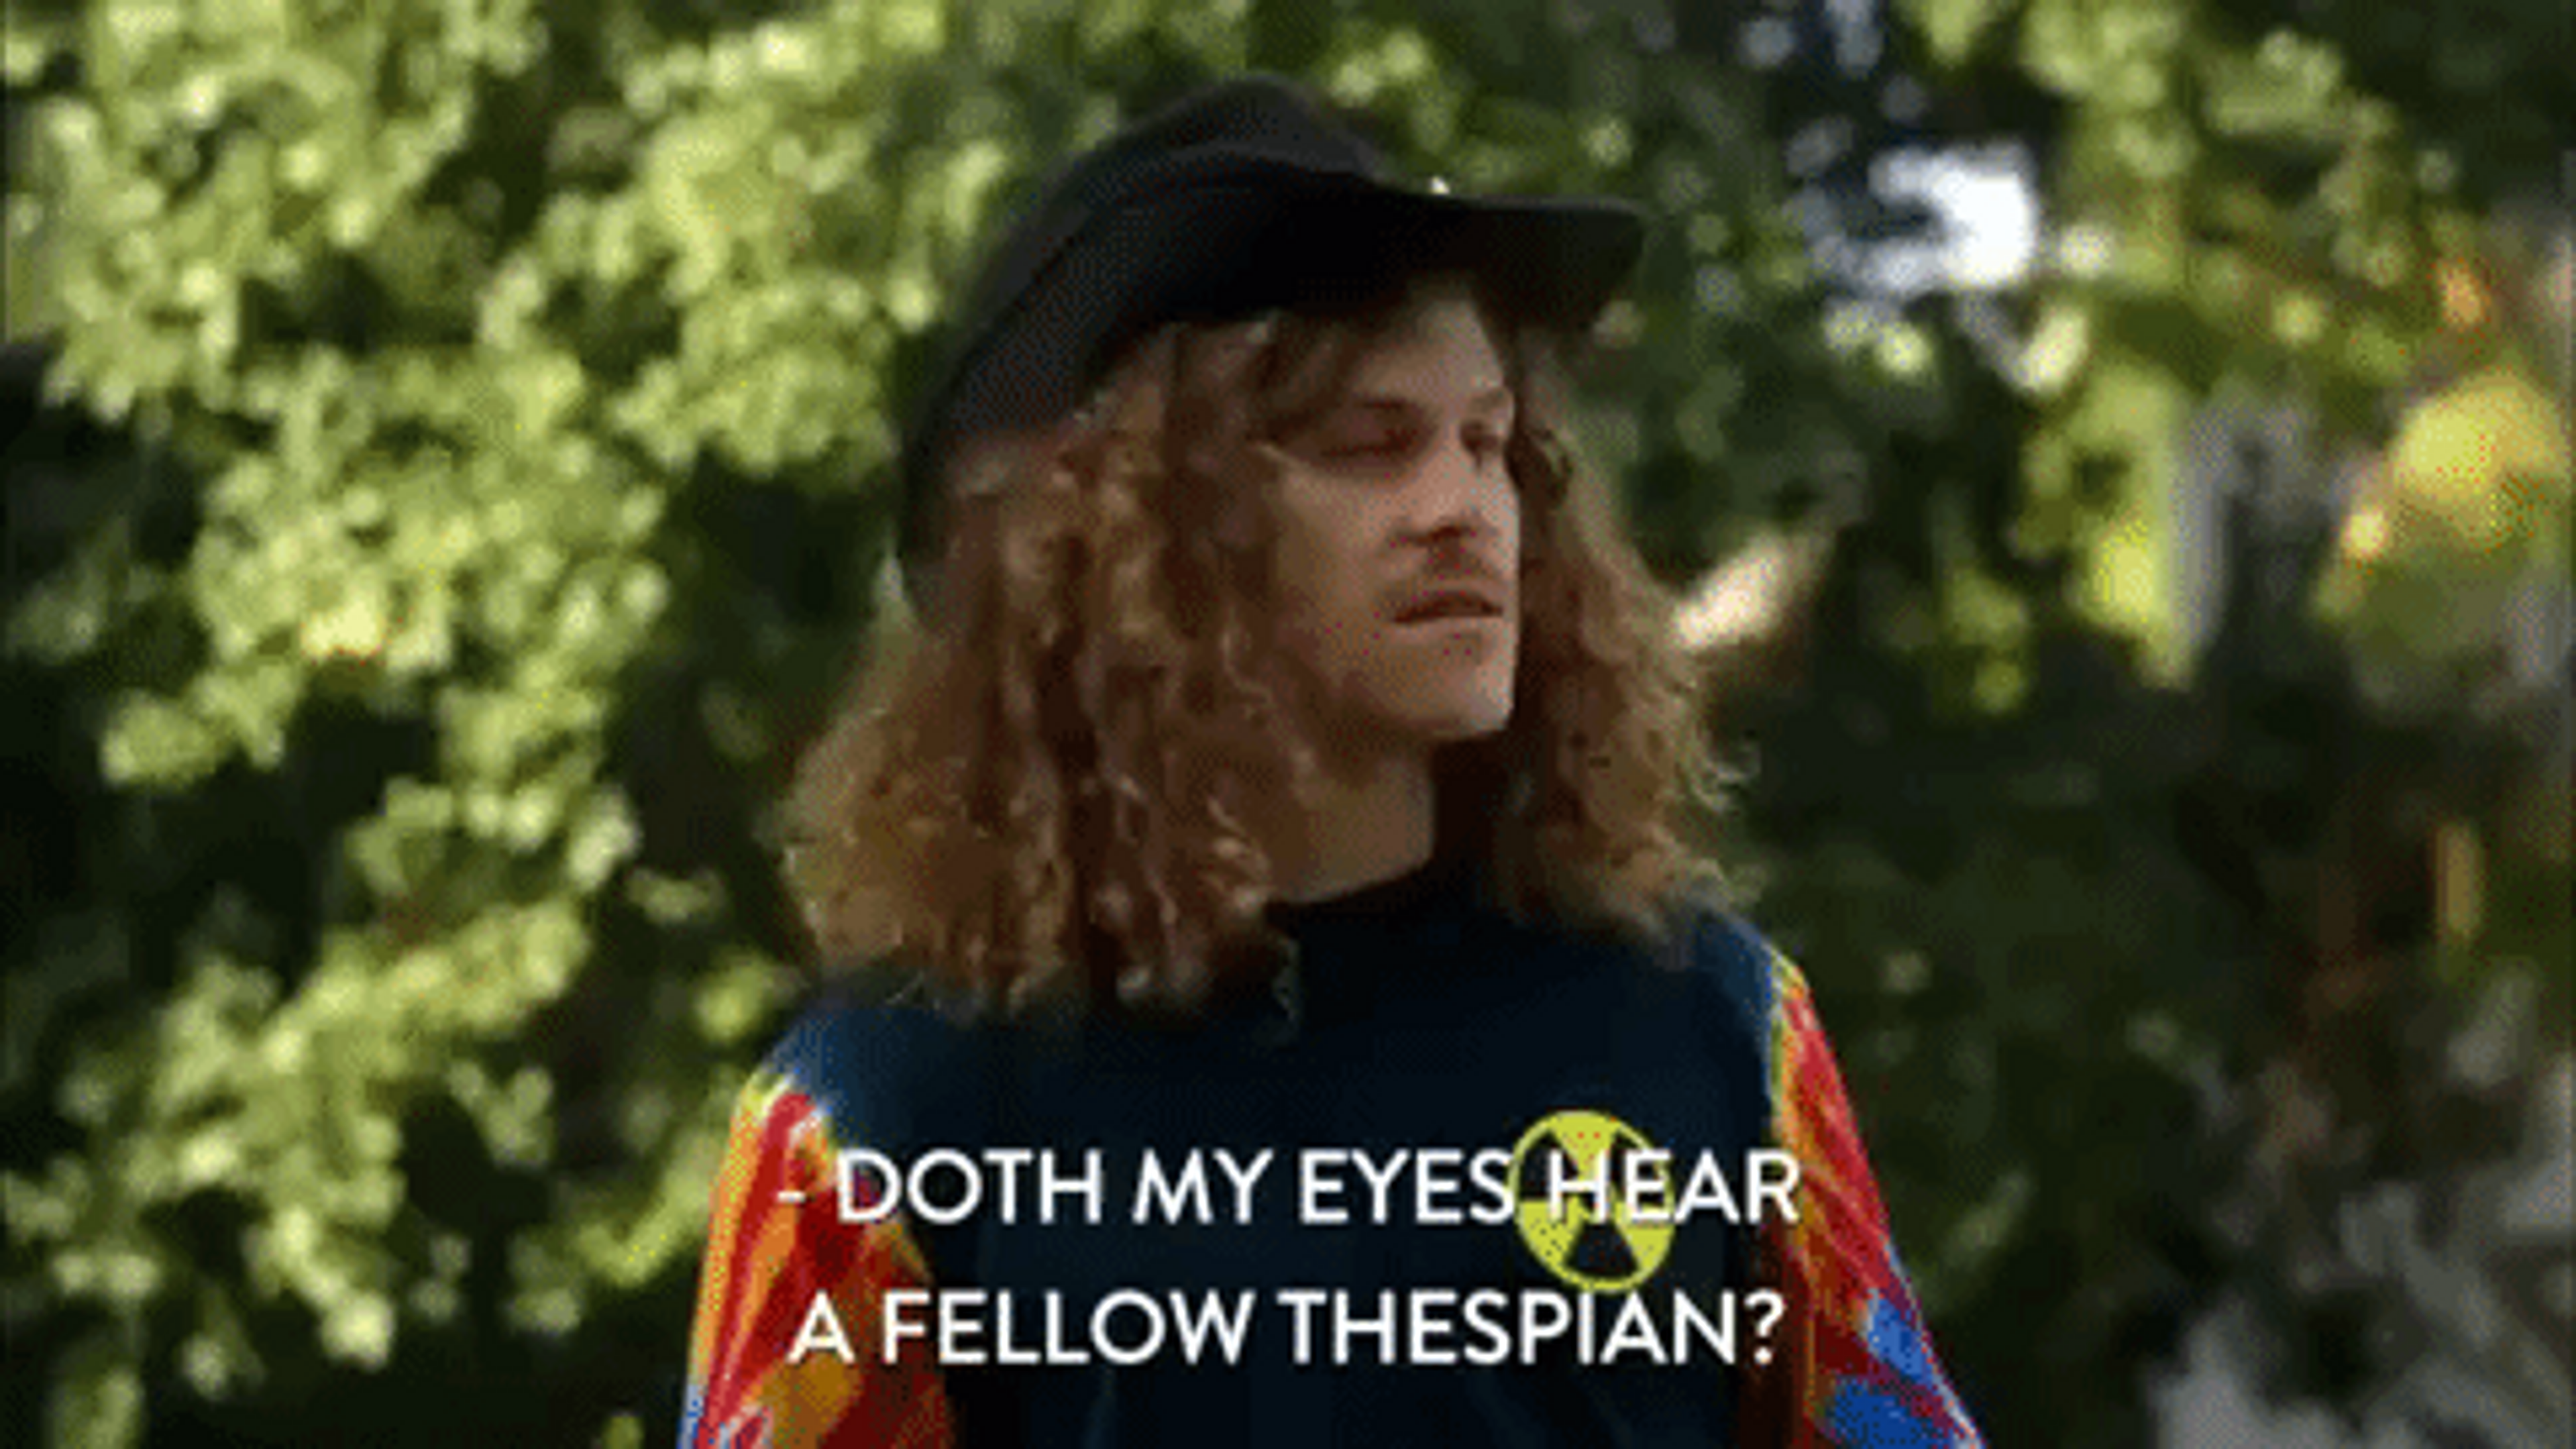 """An image from a movie with a man in renaissance clothing. The text reads """"Doth my eyes hear a fellow thespian?"""""""